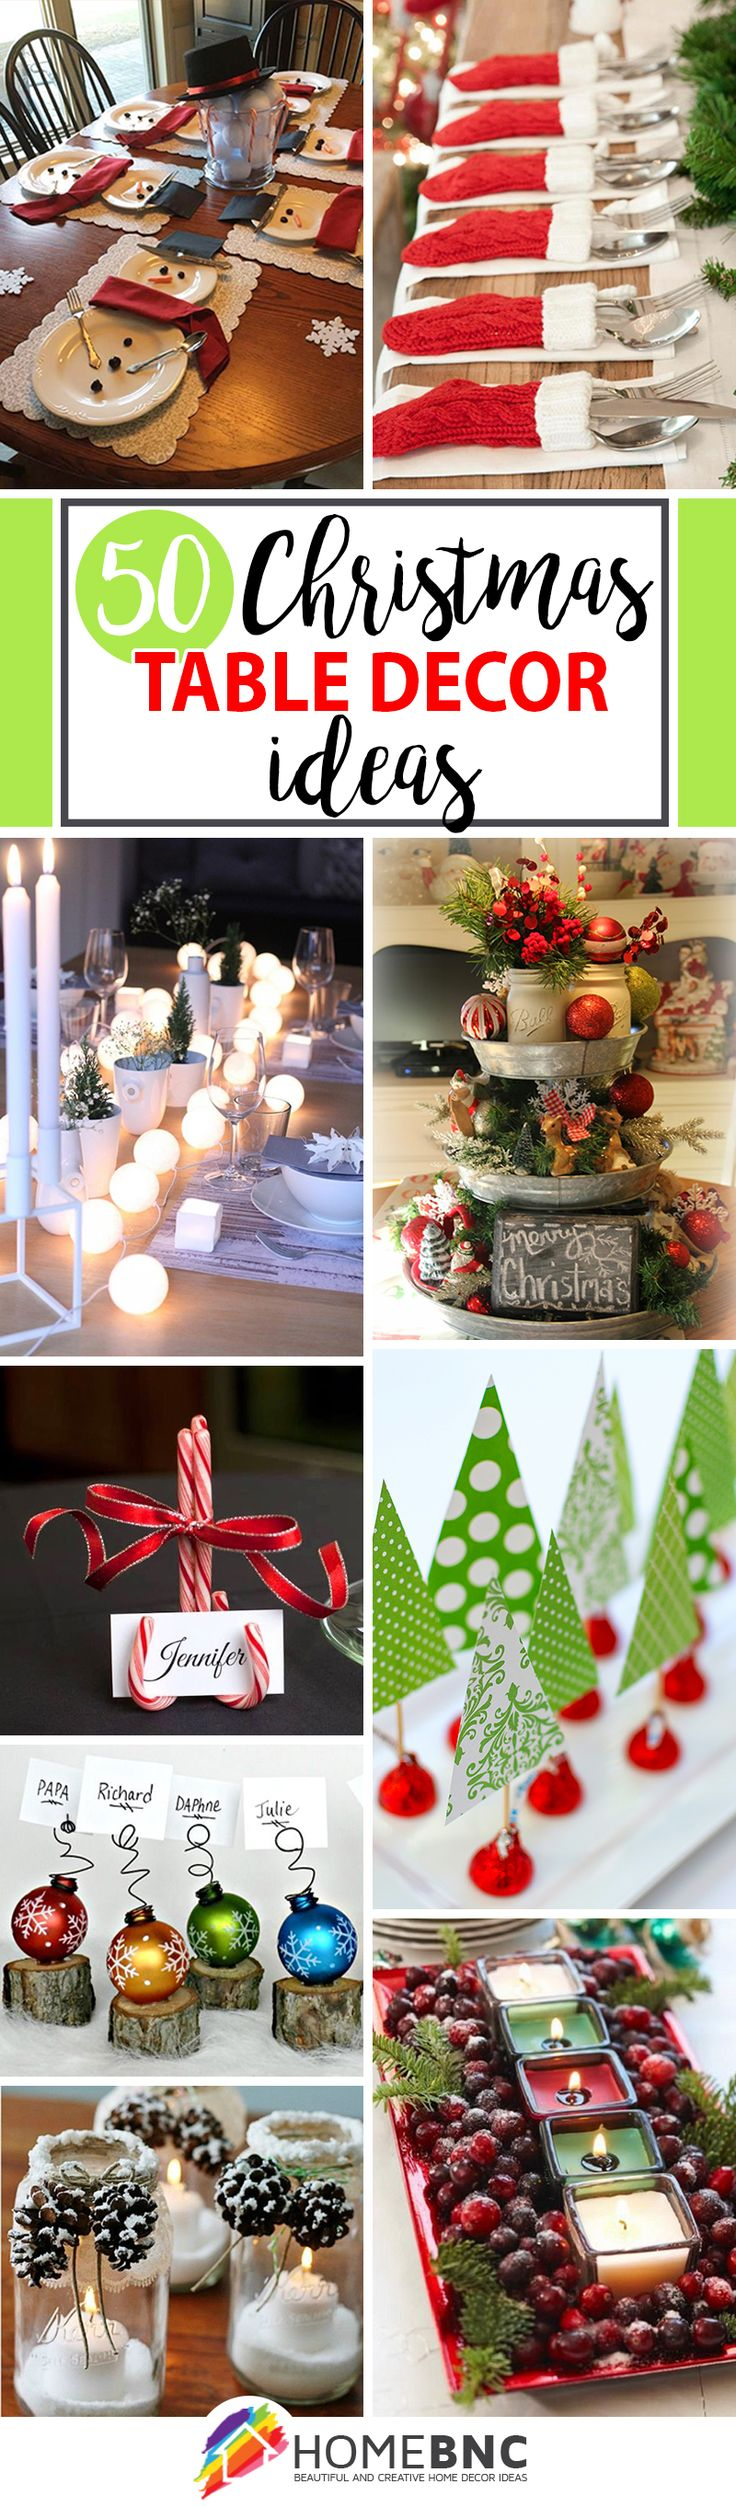 Best 25+ Christmas party table ideas on Pinterest | Christmas ...